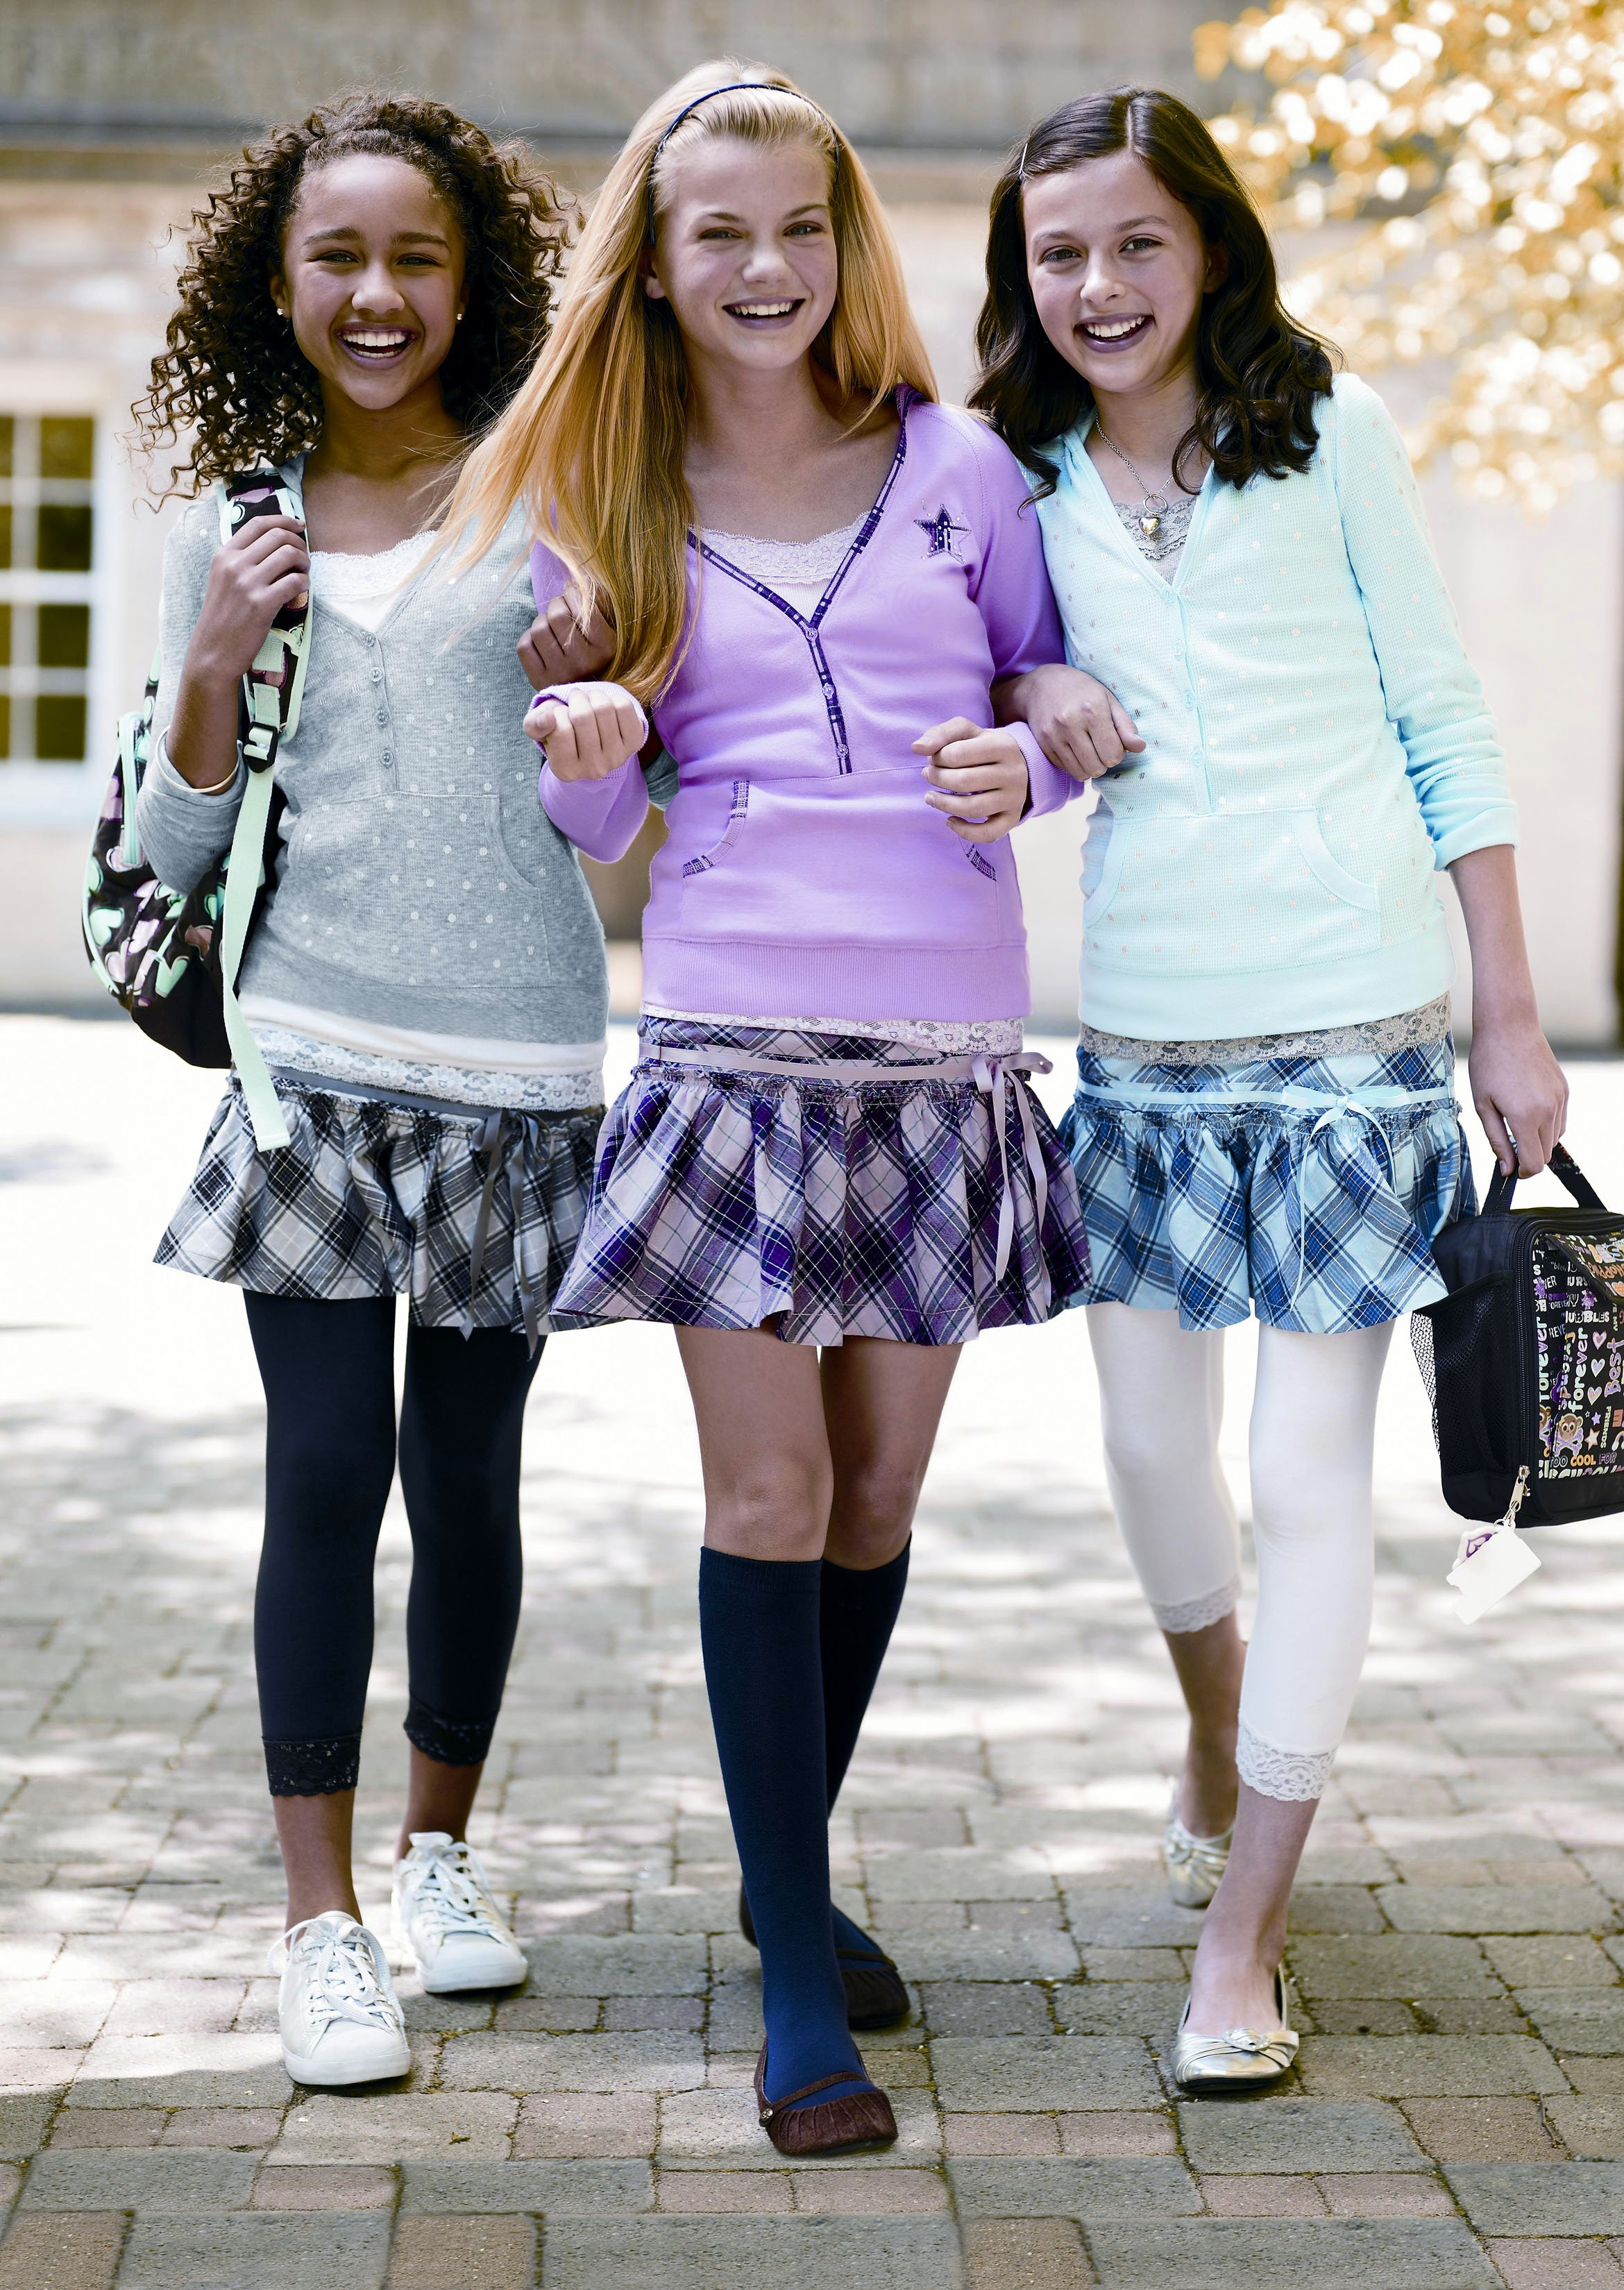 Models wear tights and leggings, which are among the articles of clothing that have been targeted by some school districts.